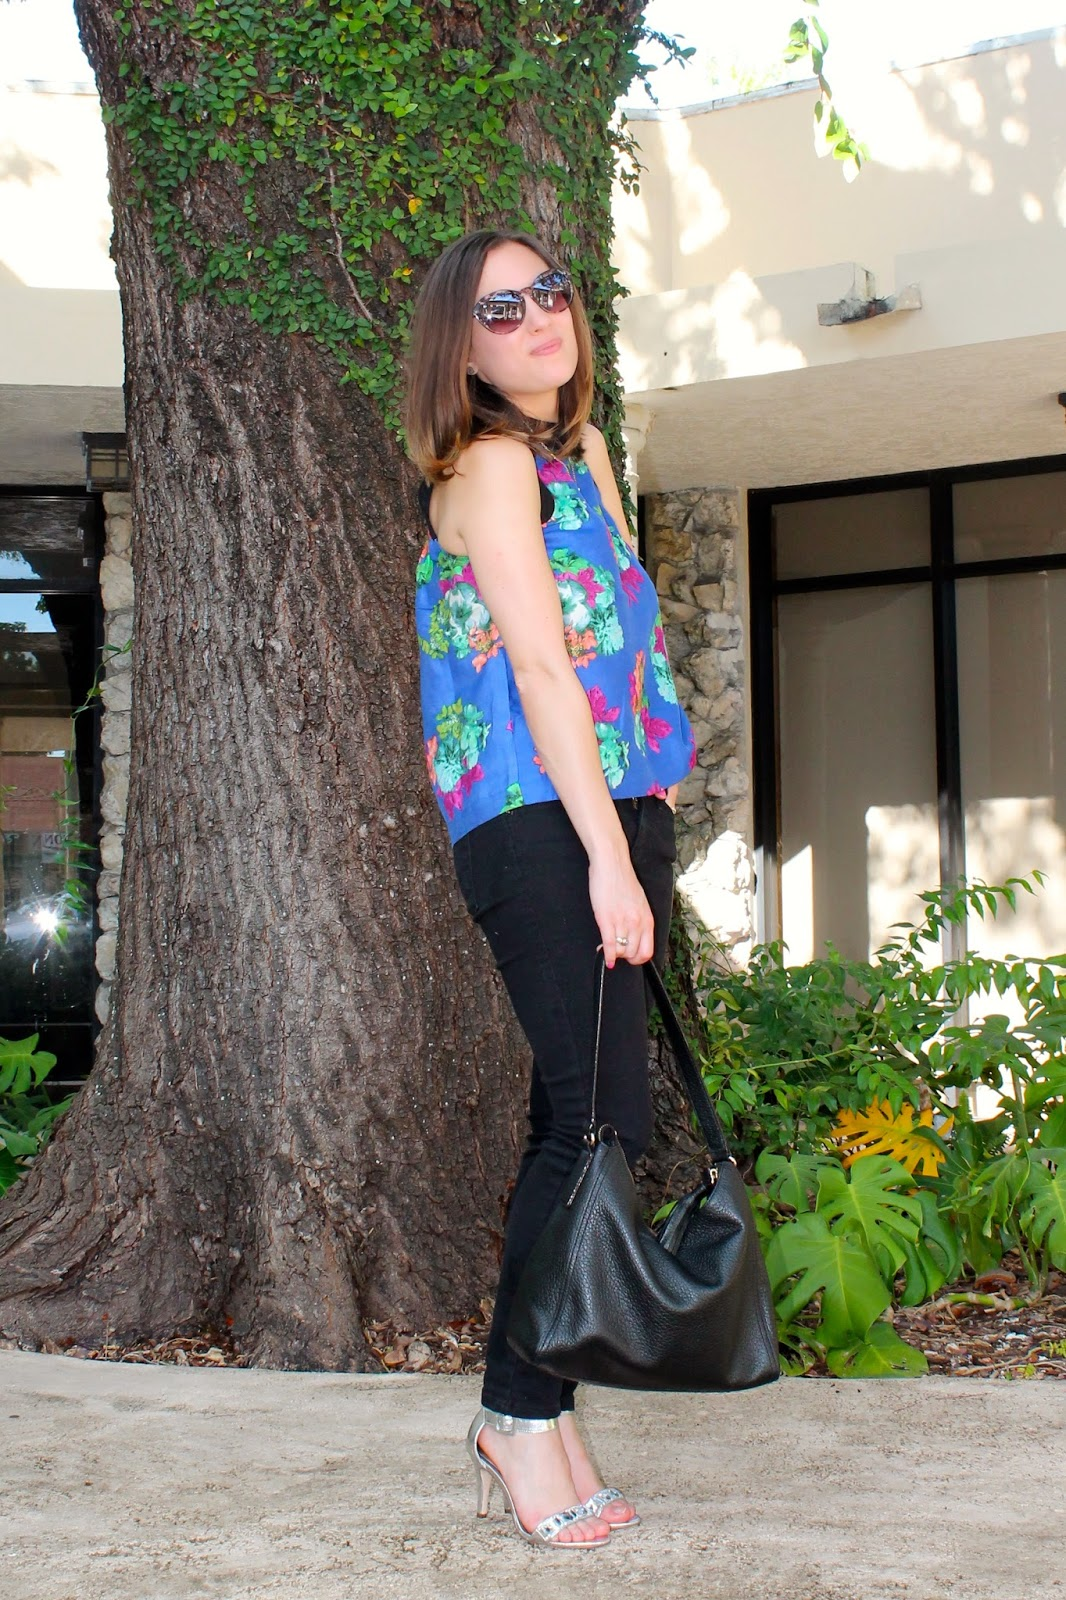 Anthropologie, Levi's, Kate Spade, Macy's, Nordstrom, Charming Charlie, BCBGeneration, Akribos XXIV, outfit inspiration, street style, fashion blog, style blog, ootd